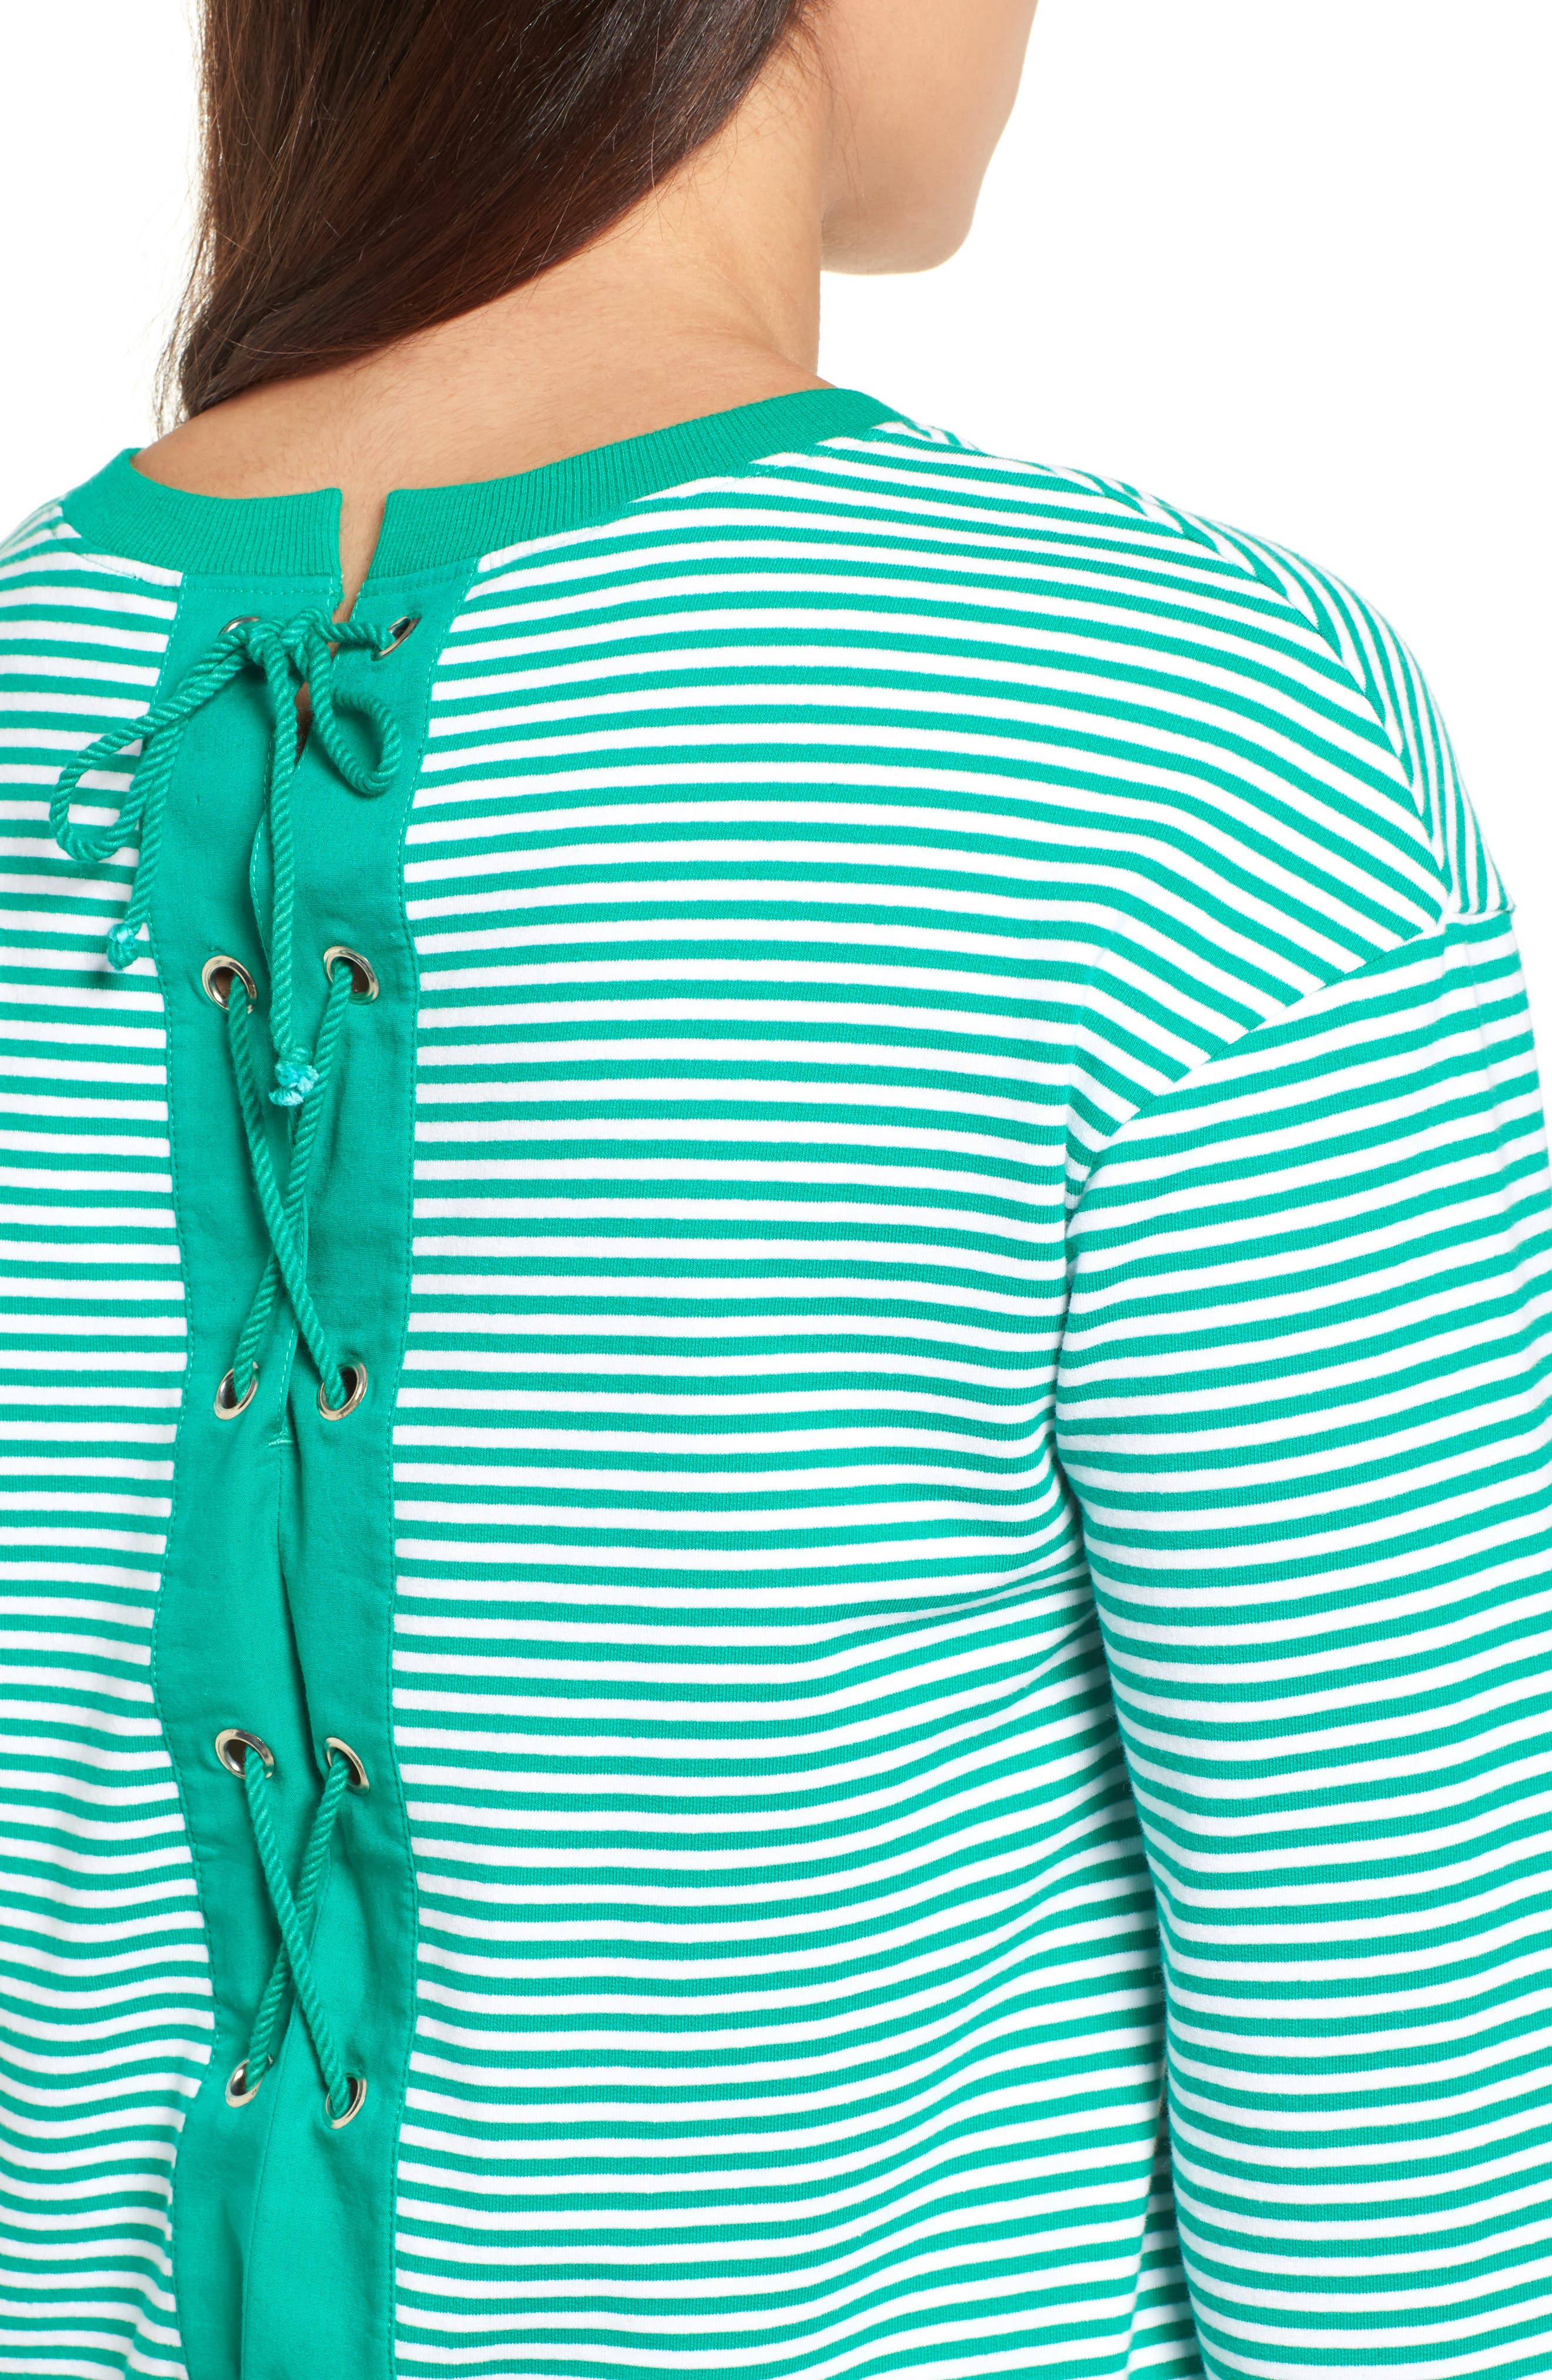 Lace-Up Knit Top,                             Alternate thumbnail 5, color,                             Green- White Stripe